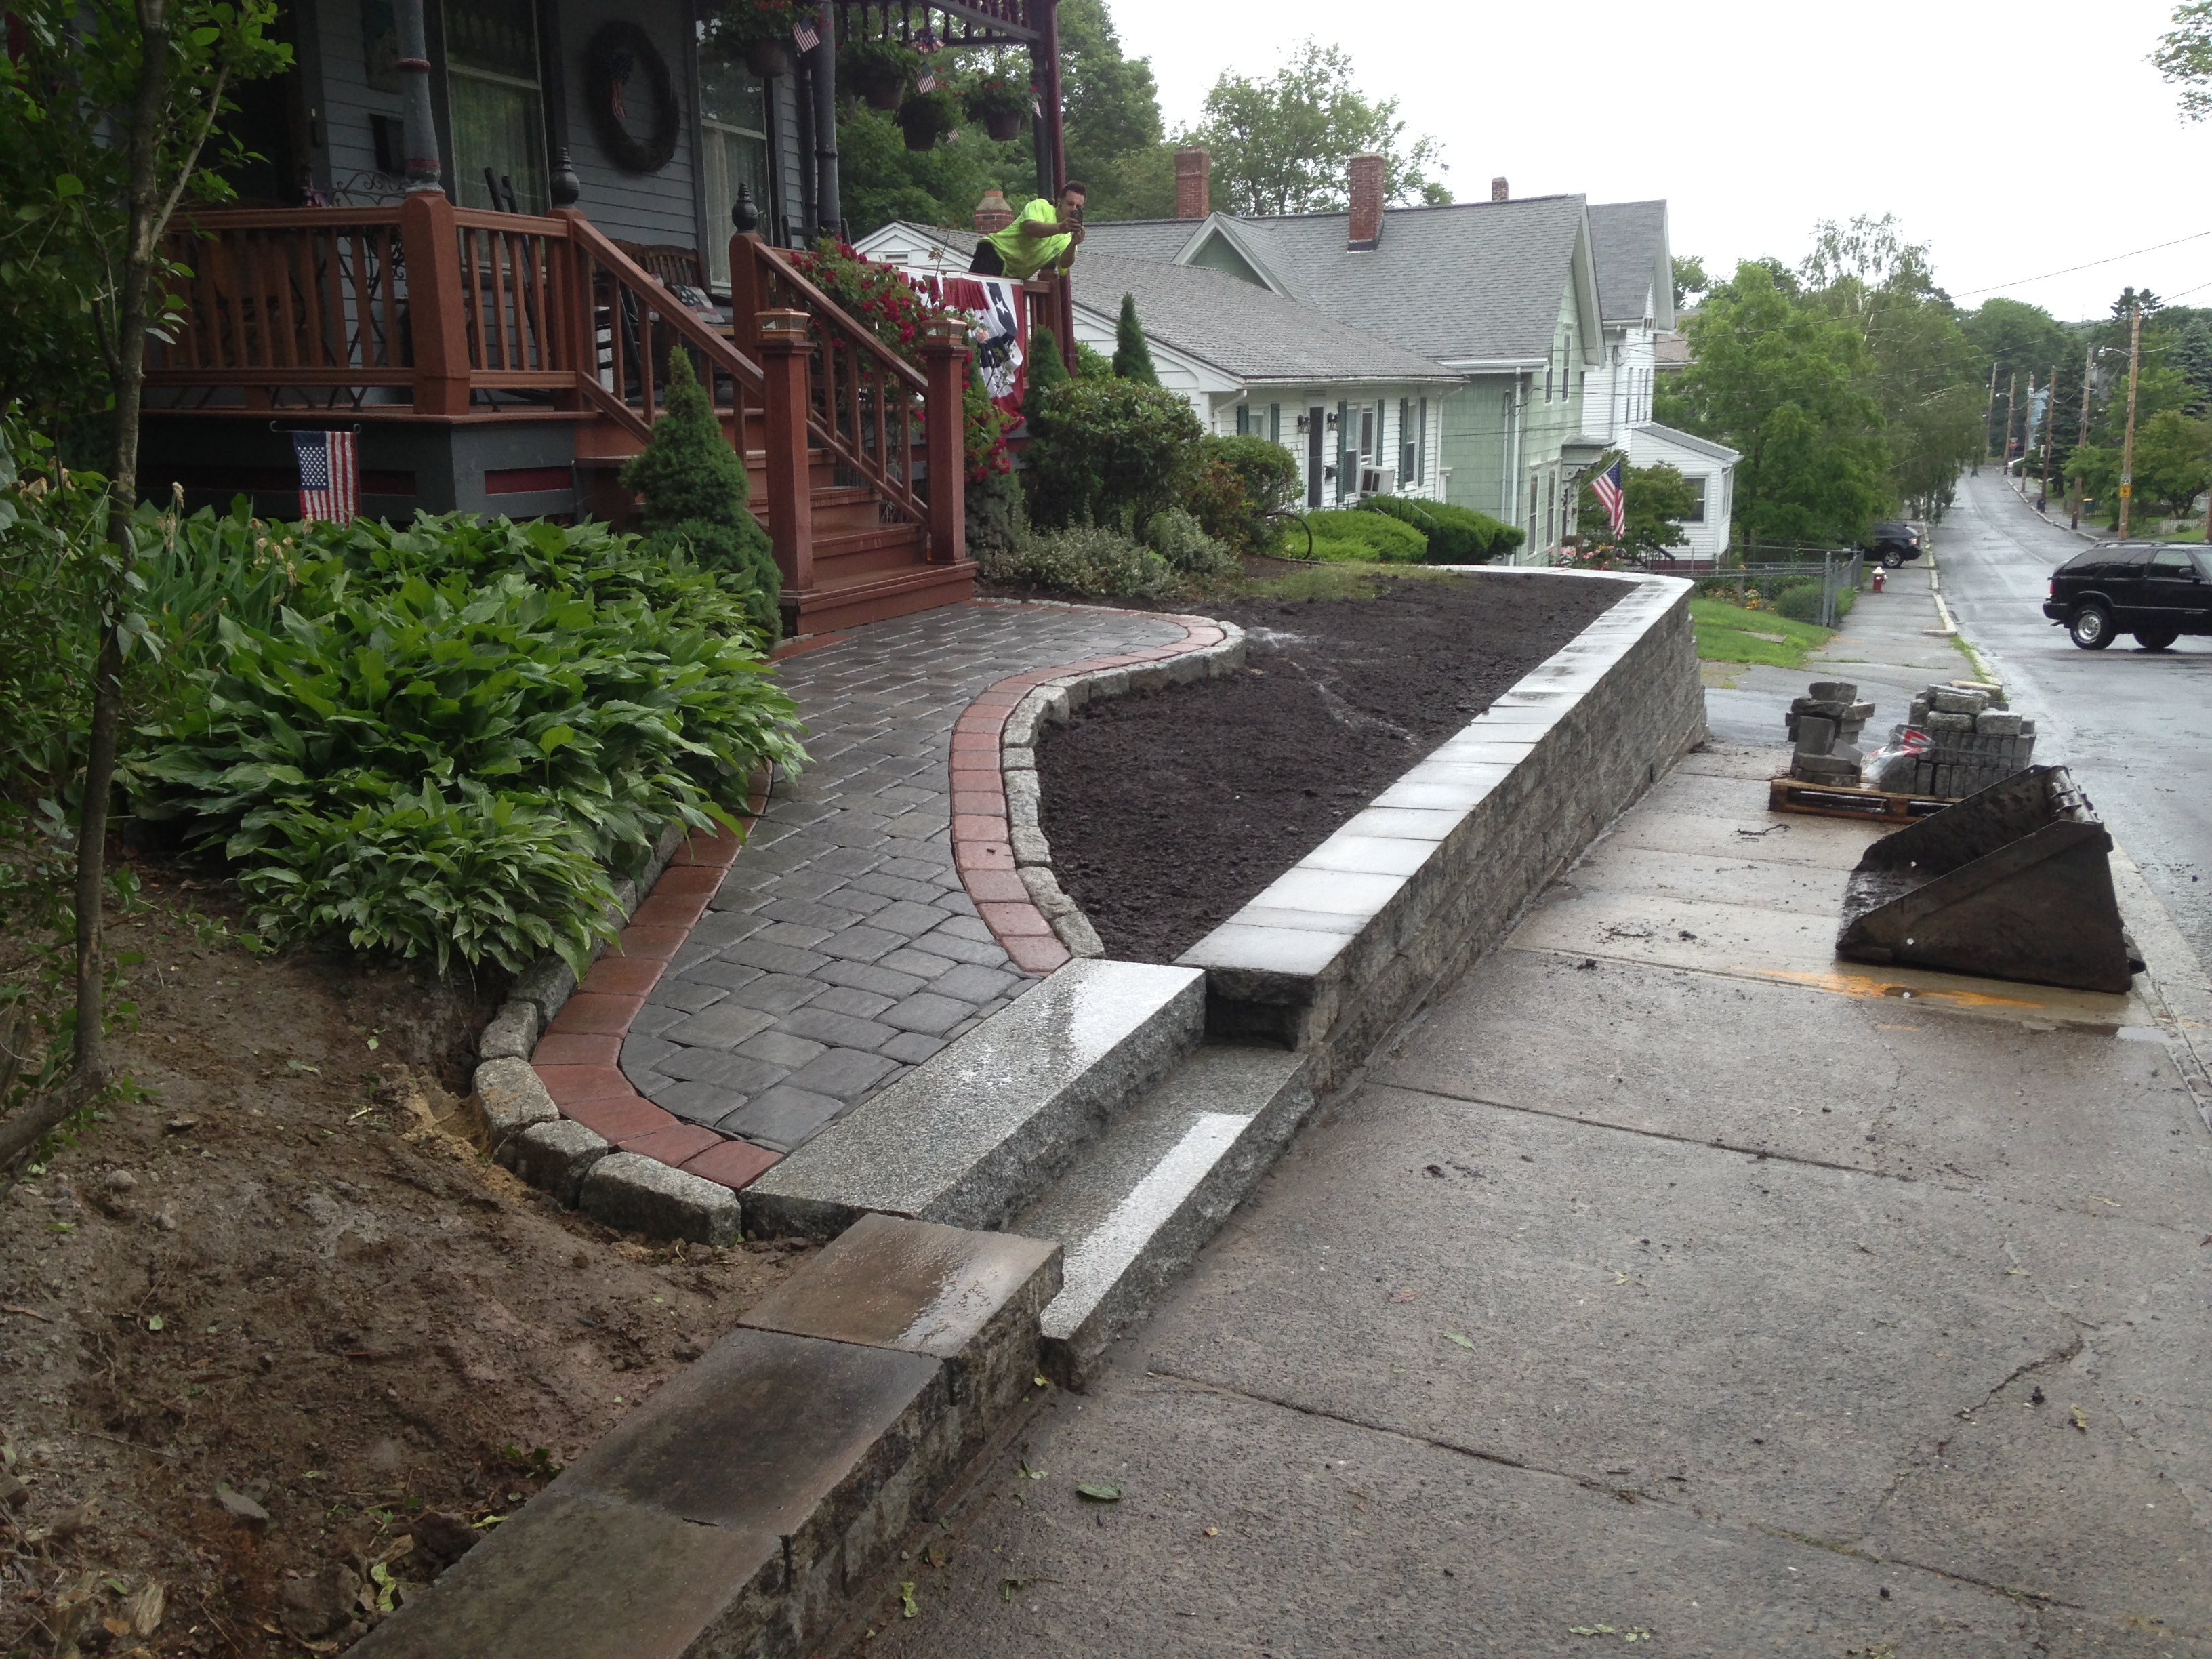 Retainer Wall, Granite Steps & Cobblestone Lined Walkway